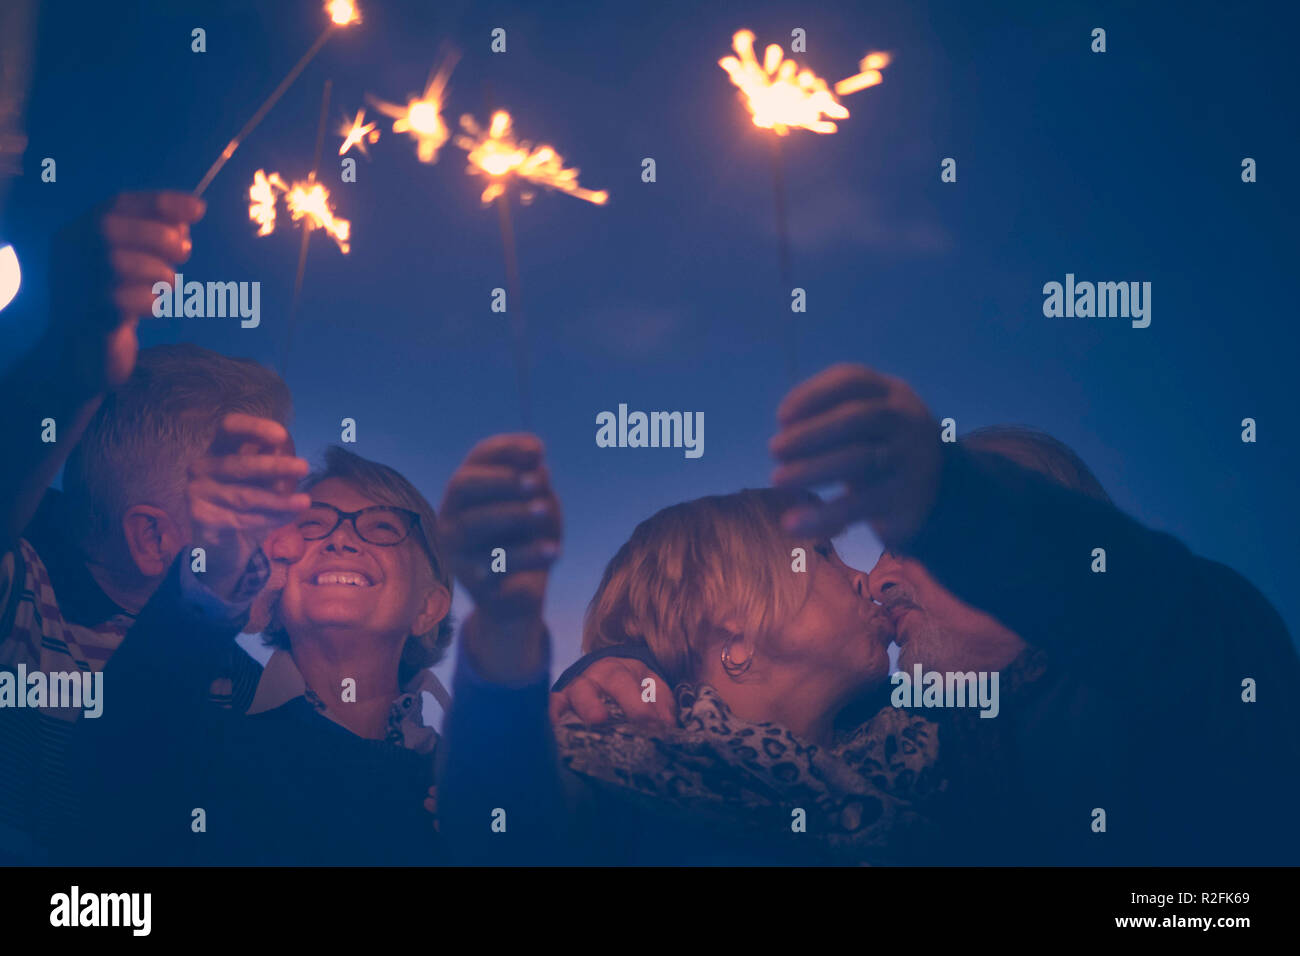 celebration party for holiday night or new year eve 2019. group of aged men and women people with fire sparks. everybody kissing and having a lot of fun by night - Stock Image